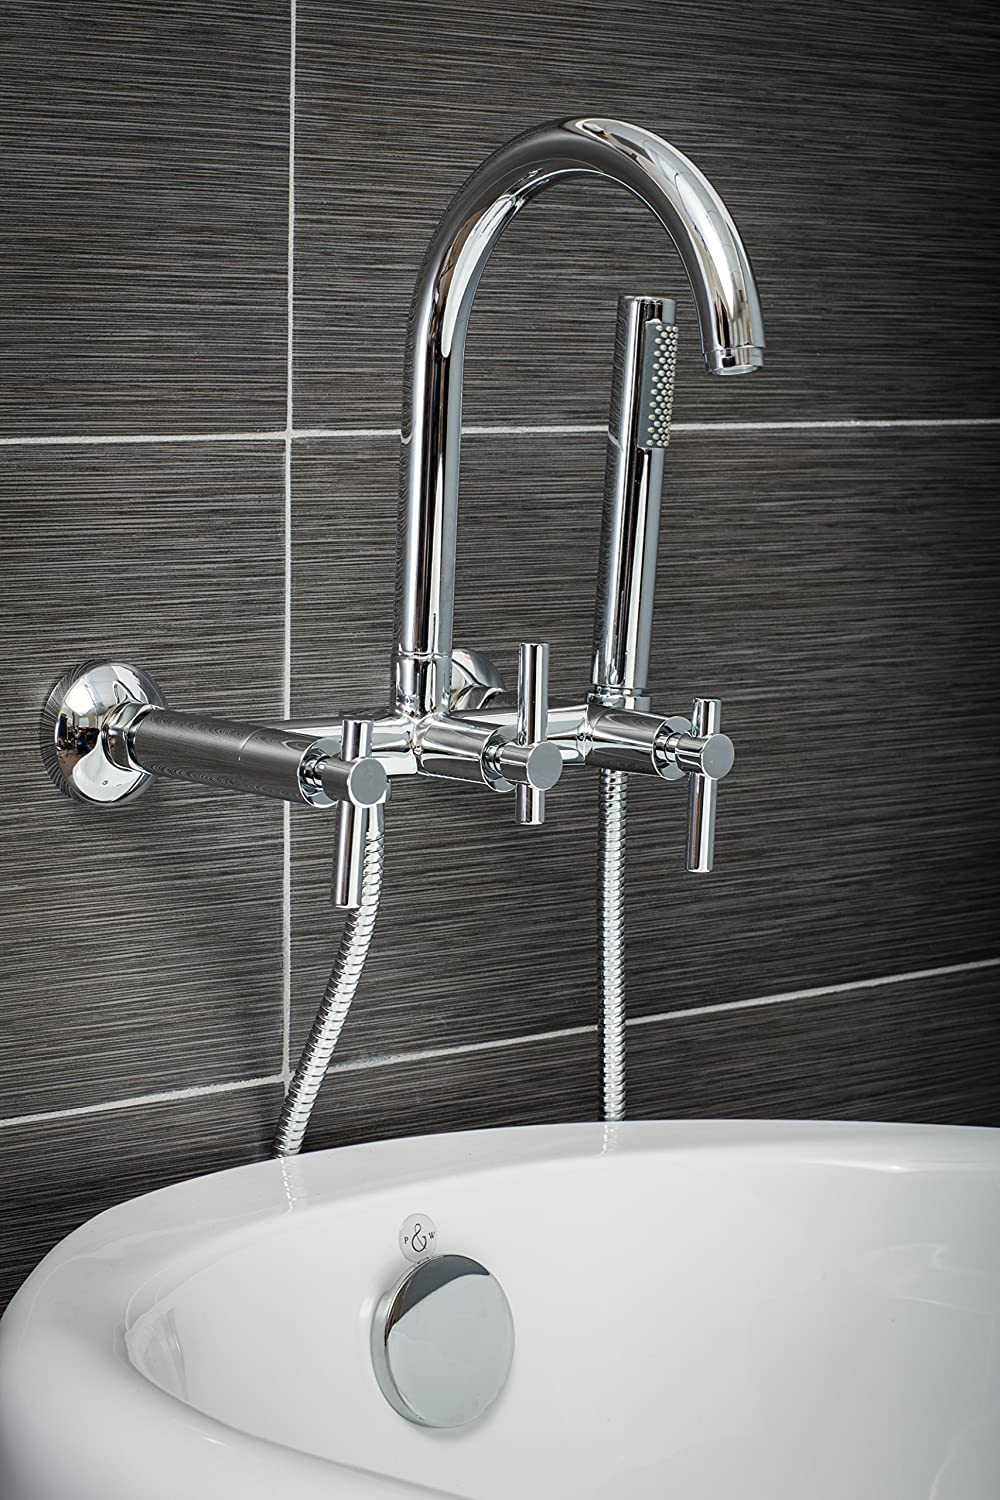 Luxury Clawfoot Tub or Freestanding Tub Filler Faucet, Modern Design ...